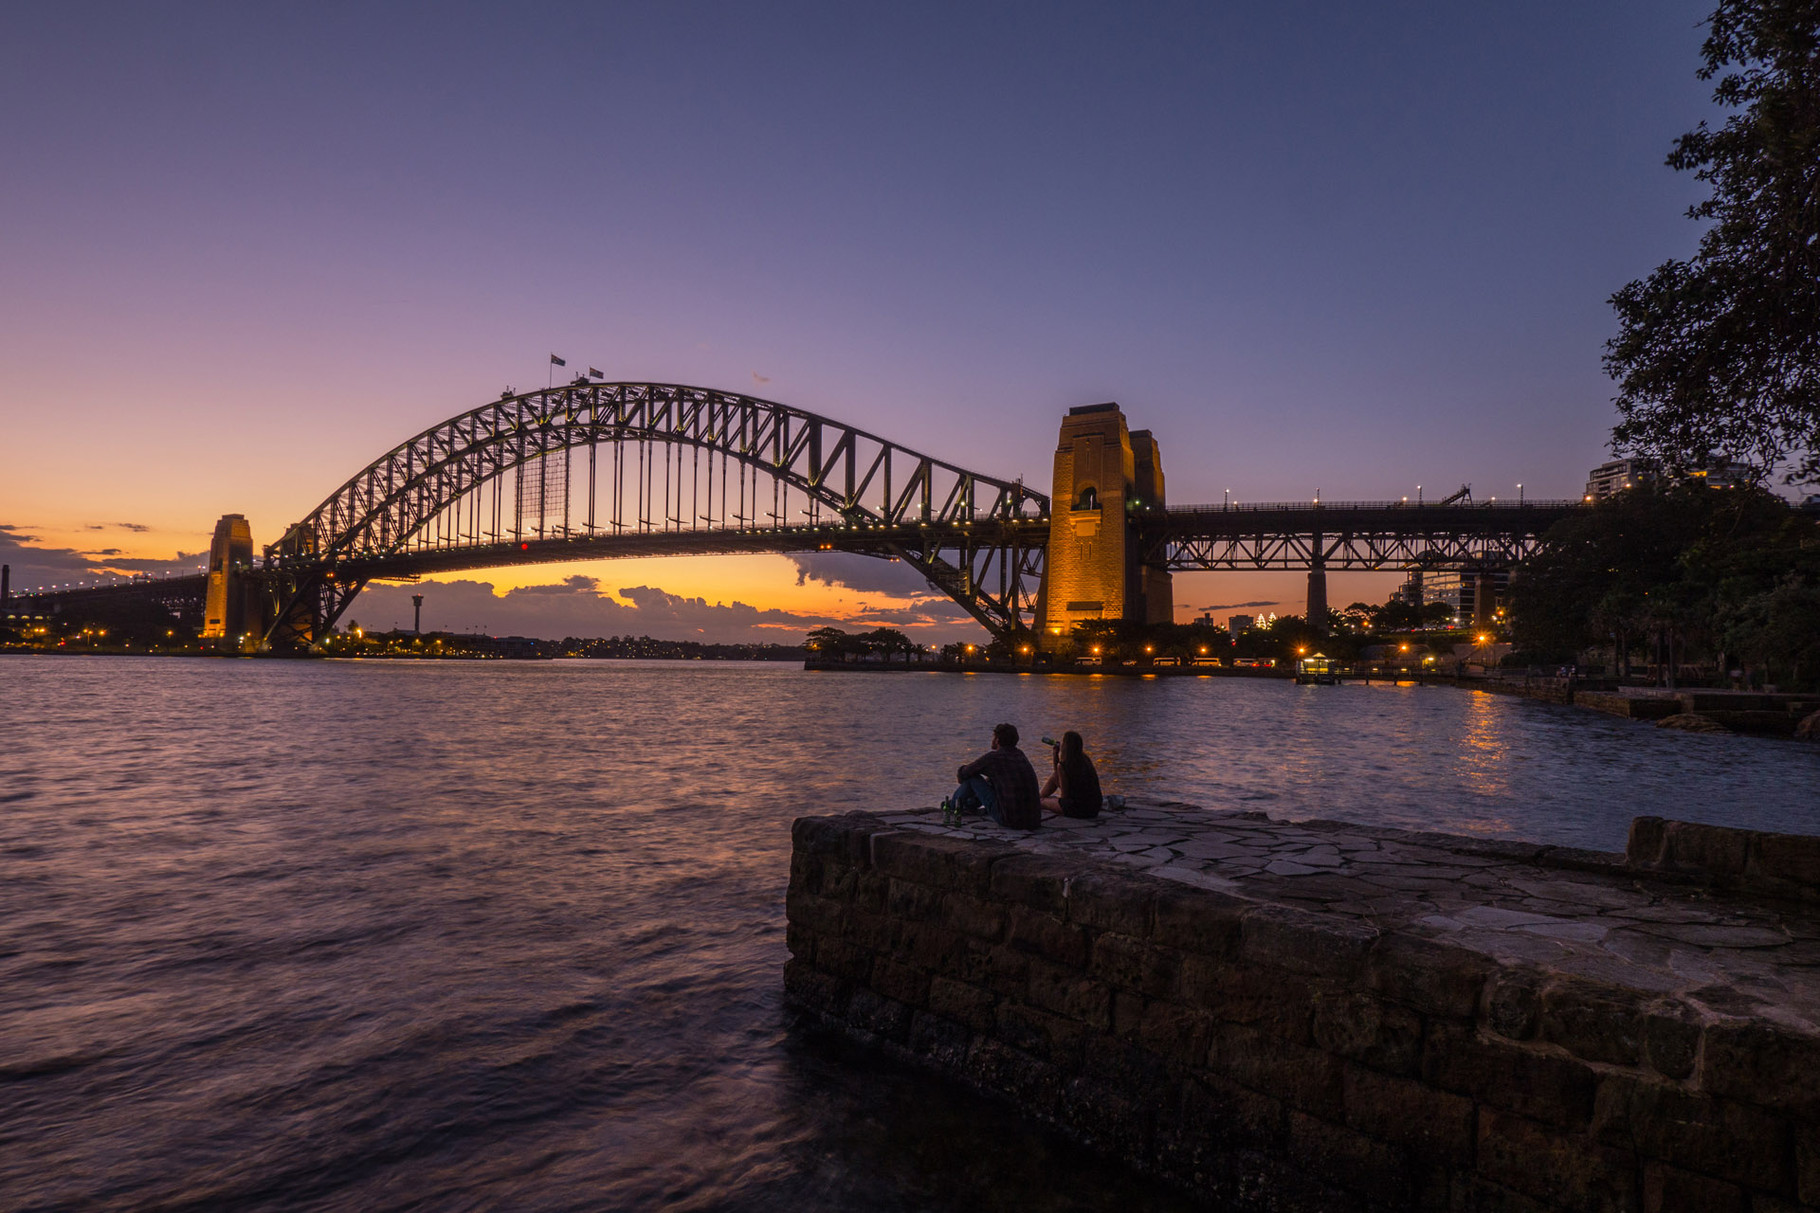 Harbour bridge at dusk, Sydney